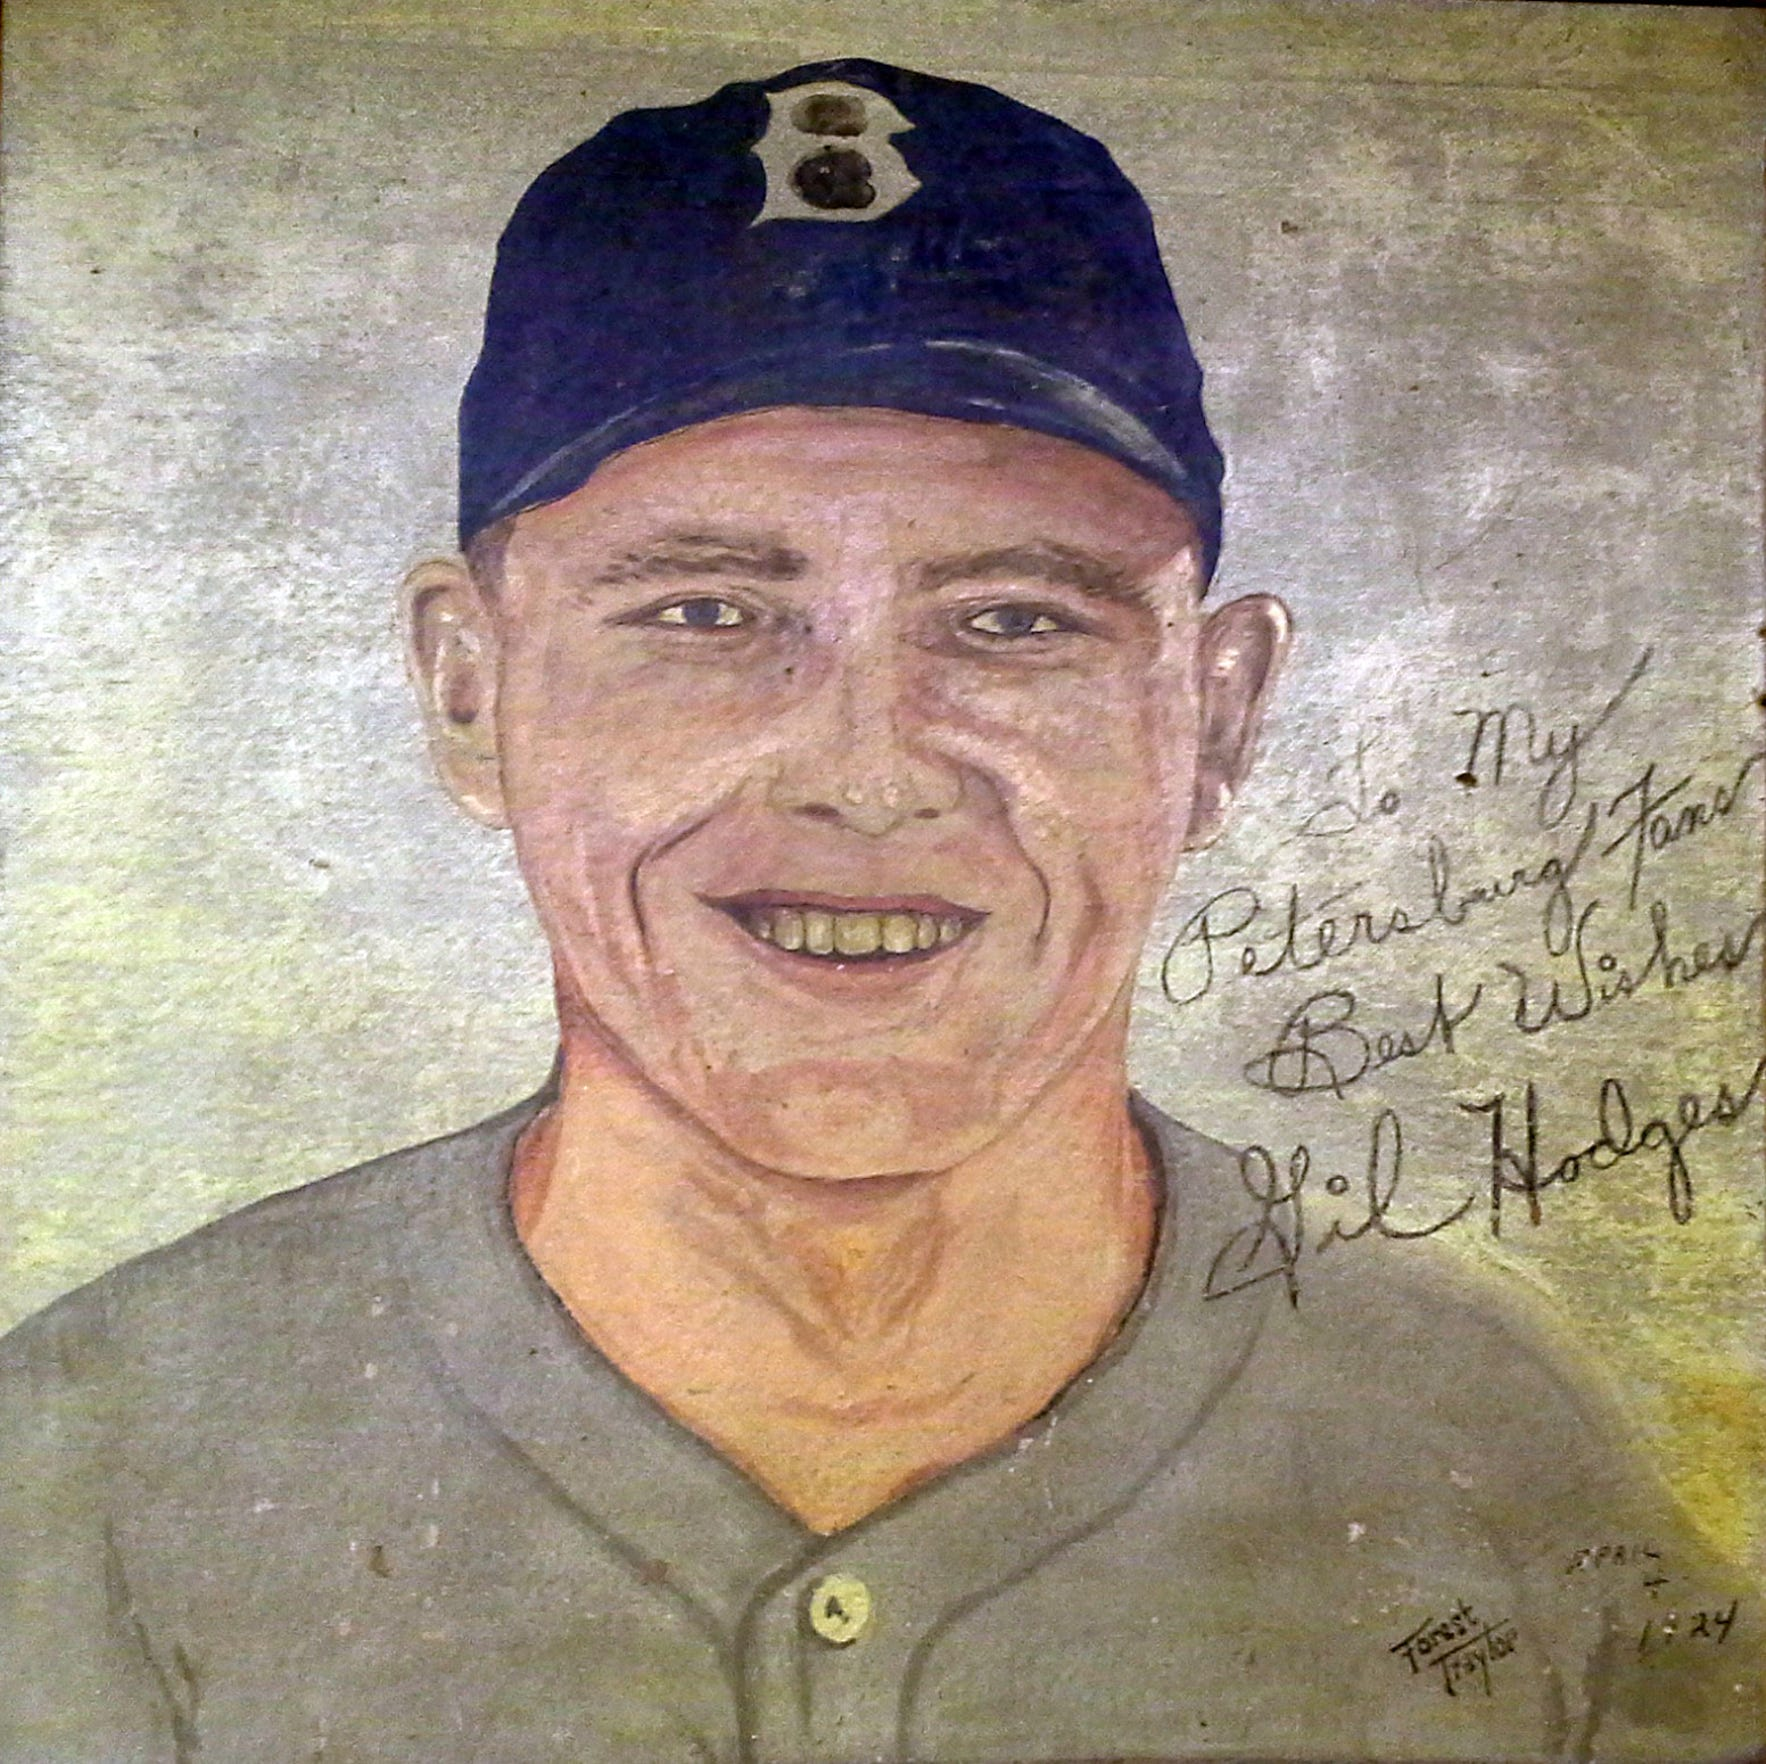 A large oil painting of Gil Hodges found in Vincennes (Gil signed it to his fans in Petersburg).